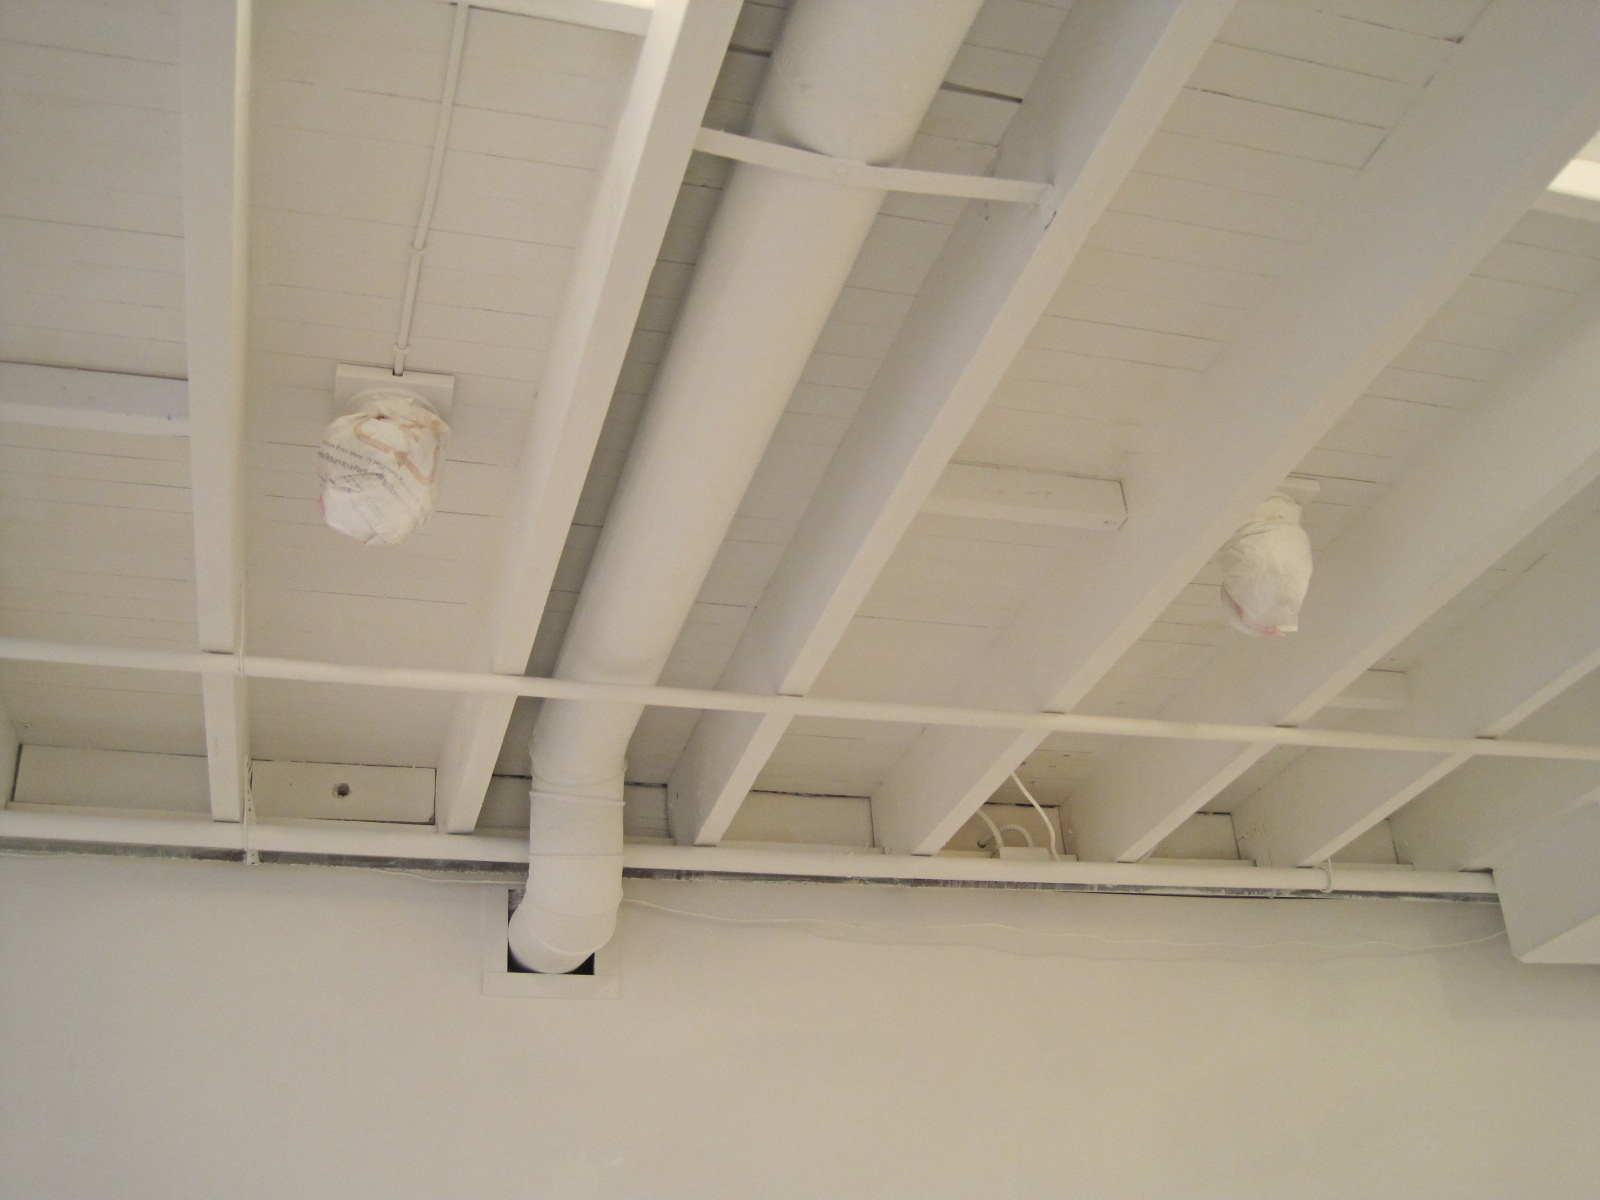 Http Cheapnikeshoeas Blogspot Com 2014 04 Exposed Basement Ceiling Html